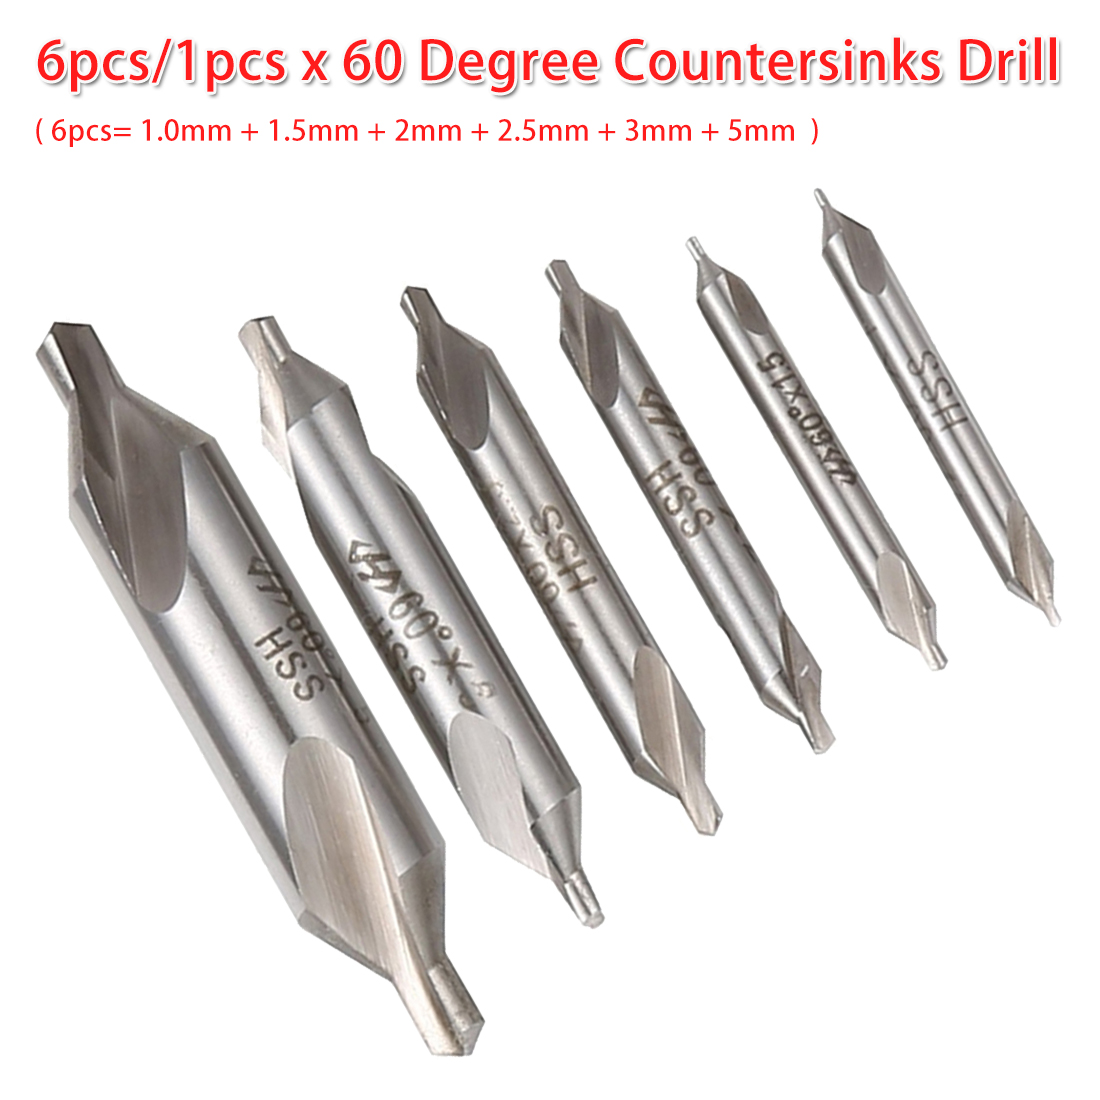 60 Degree Countersink Drill 6pcs/1pcs HSS Combined Center Drill Bit 1.0mm 1.5mm 2mm 2.5mm 3mm 5mm For Bodhi Rosary/ Woodwork